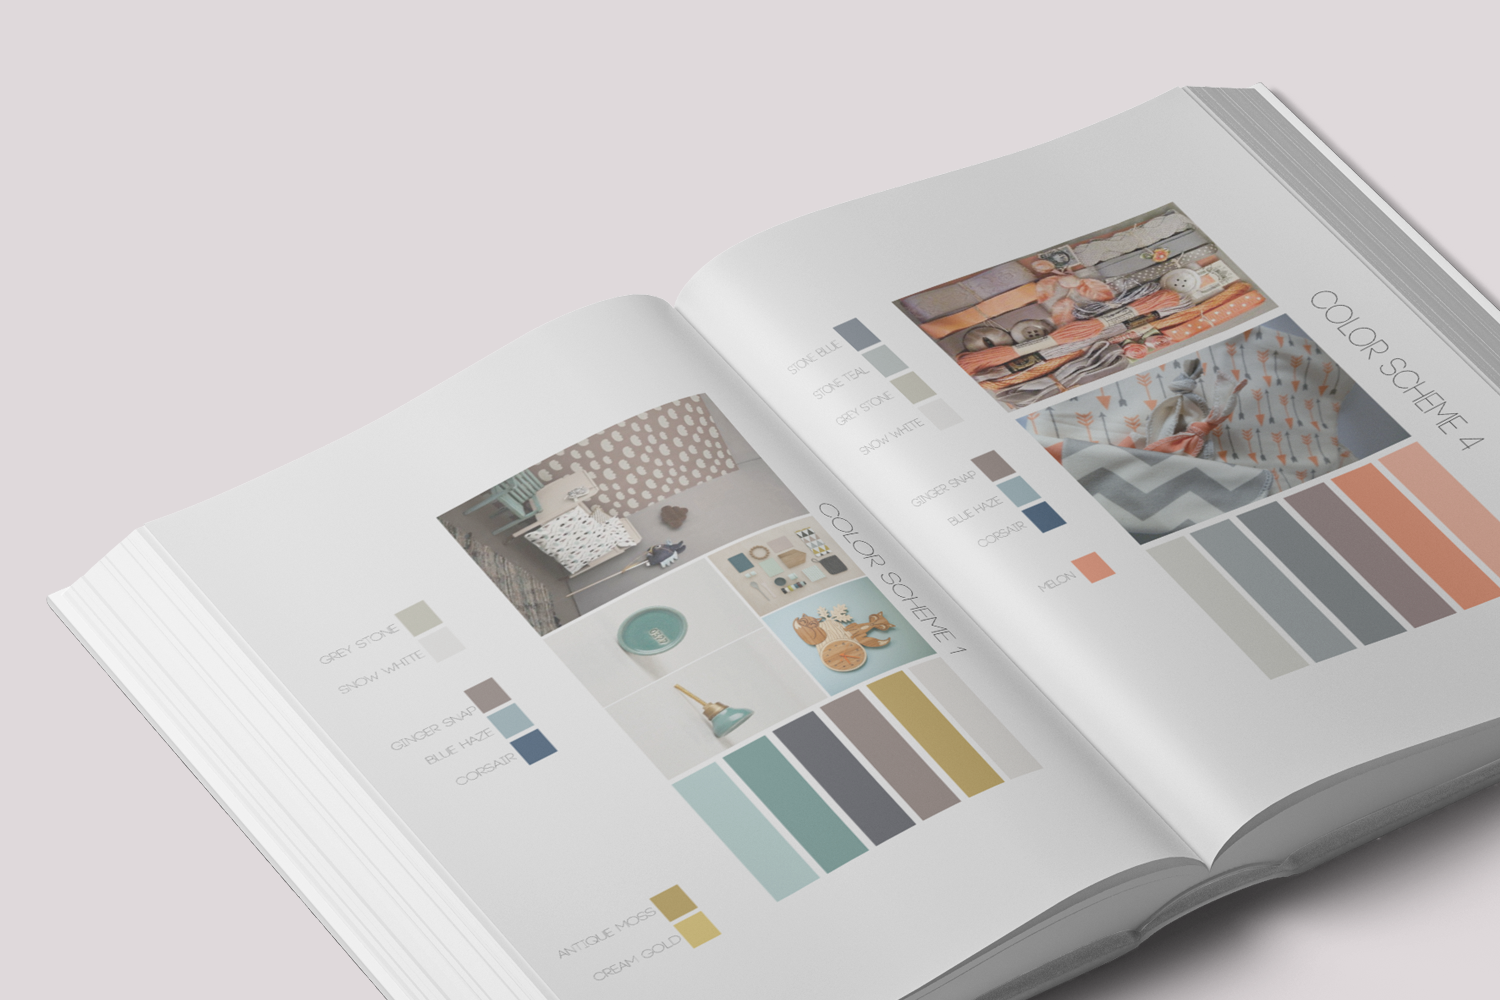 moKee | Seed Design Consultancy